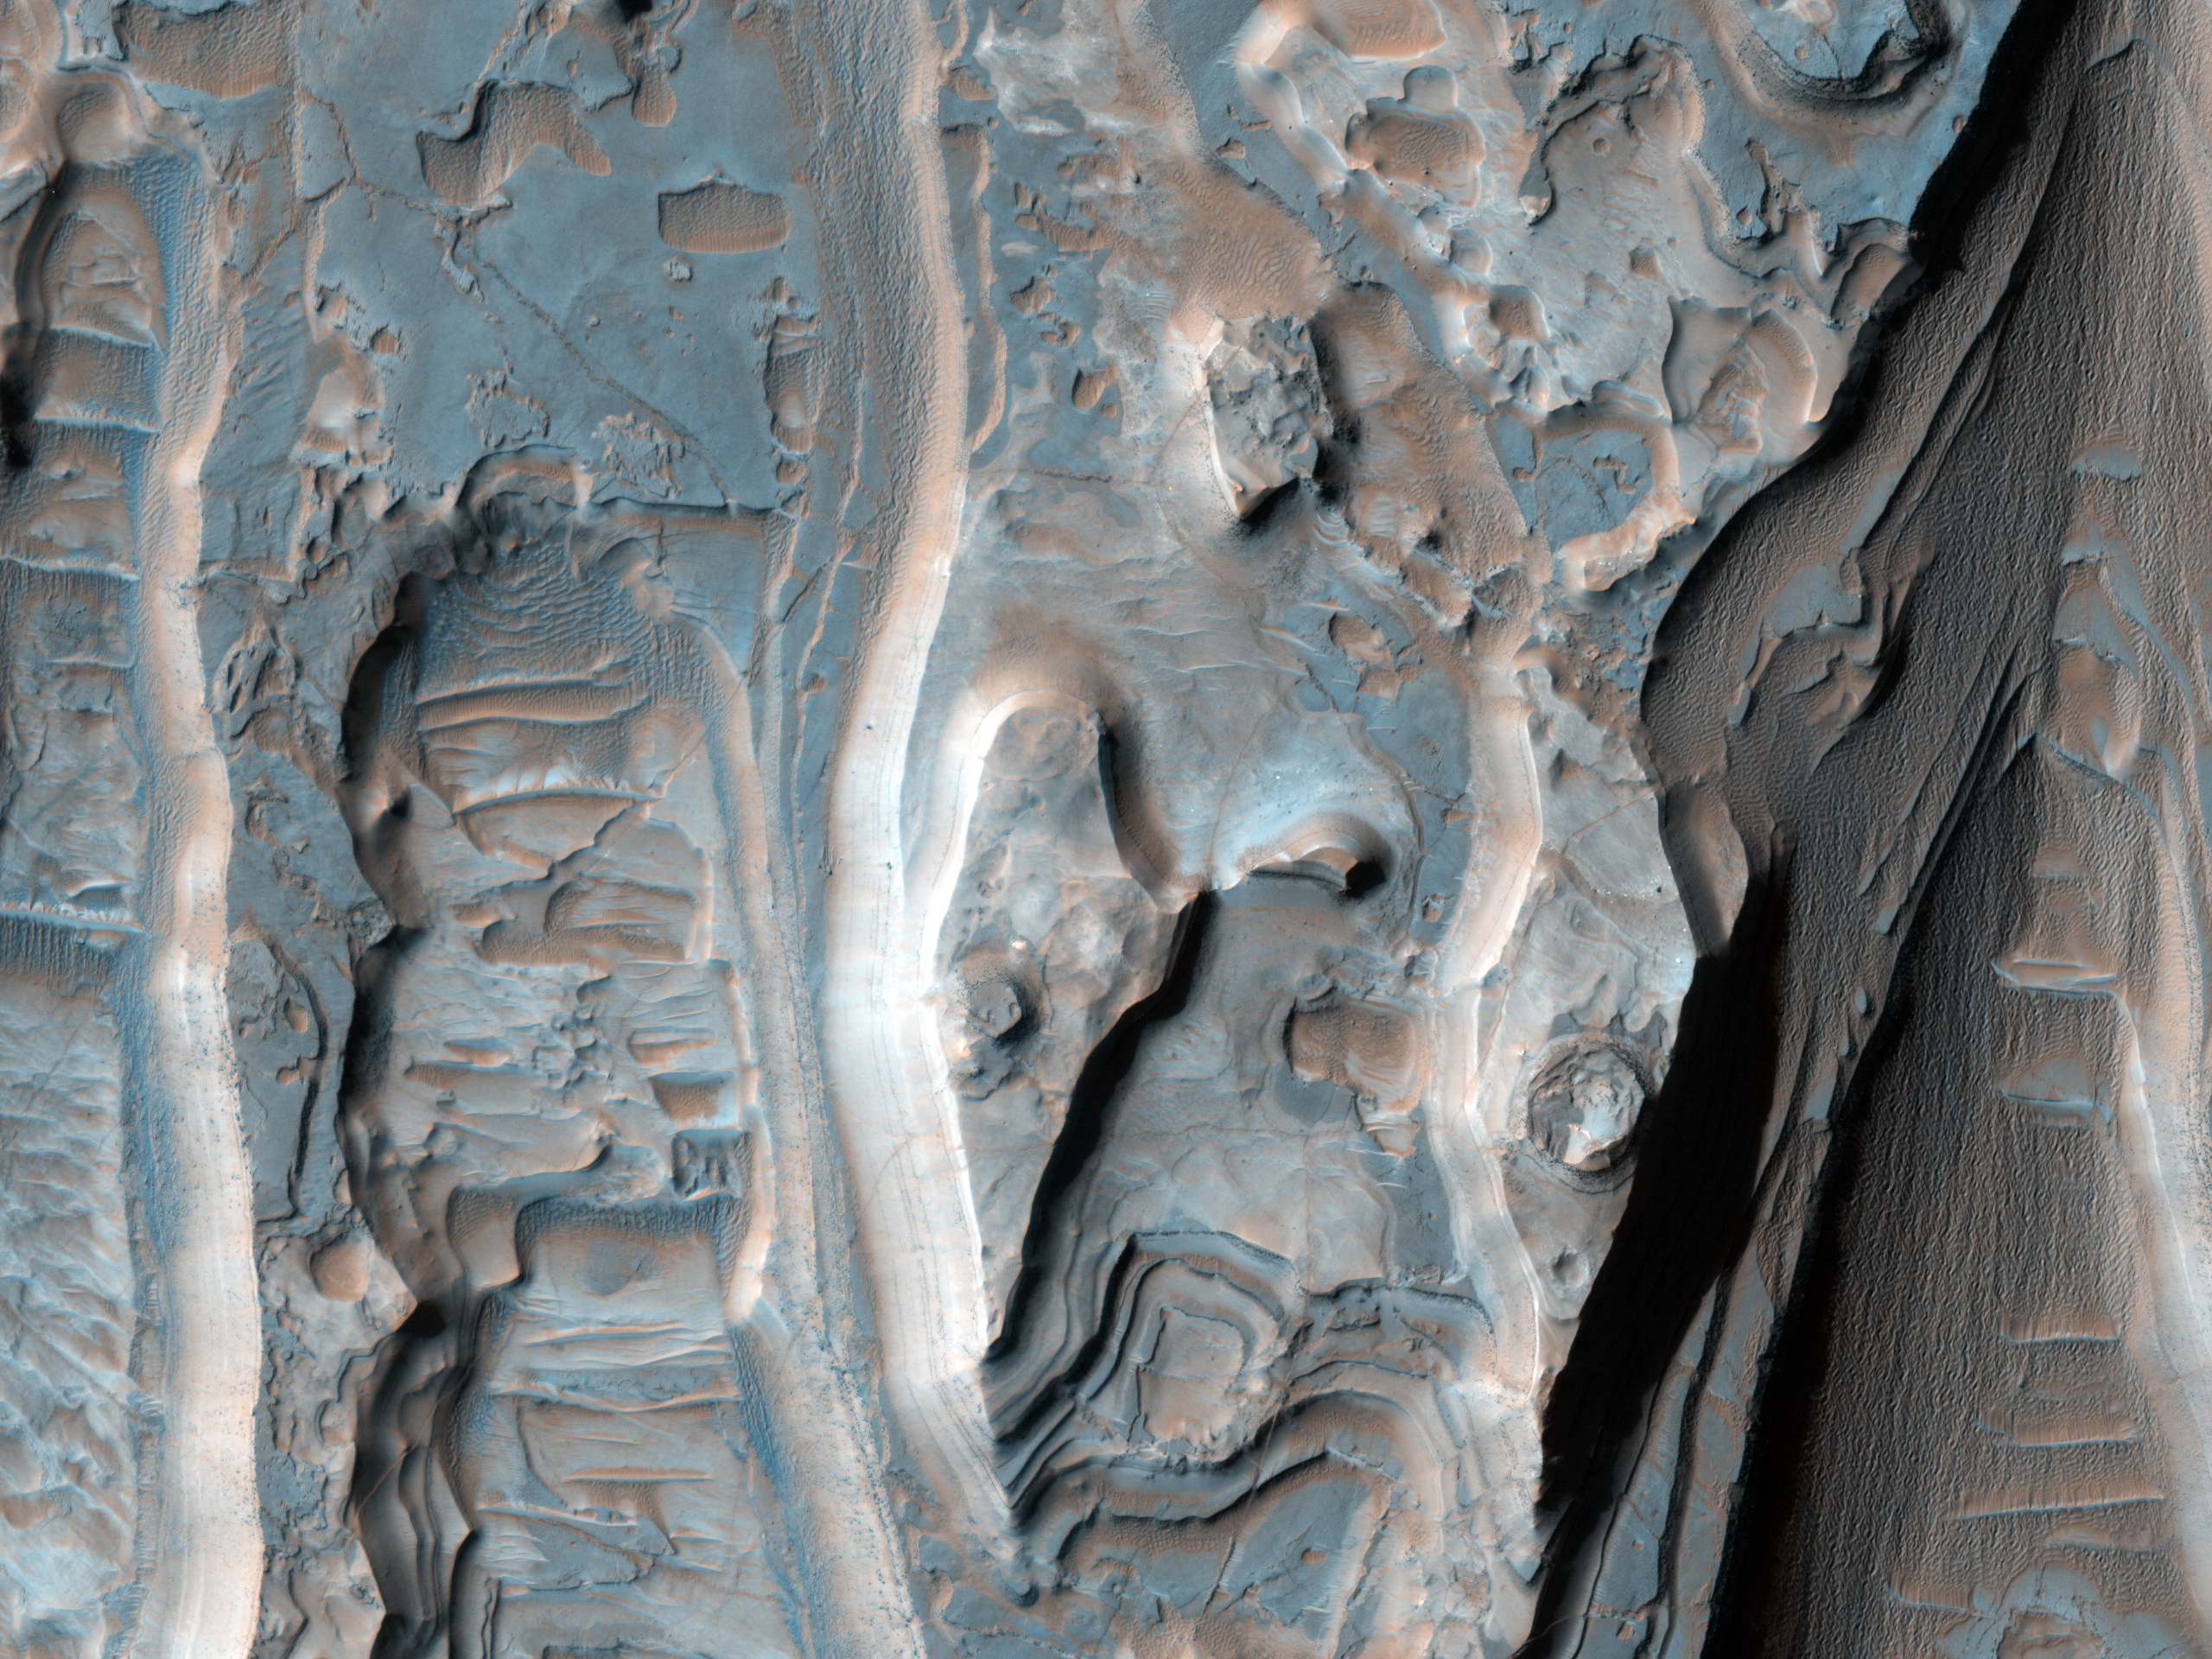 Eroding Layers in an Impact Crater